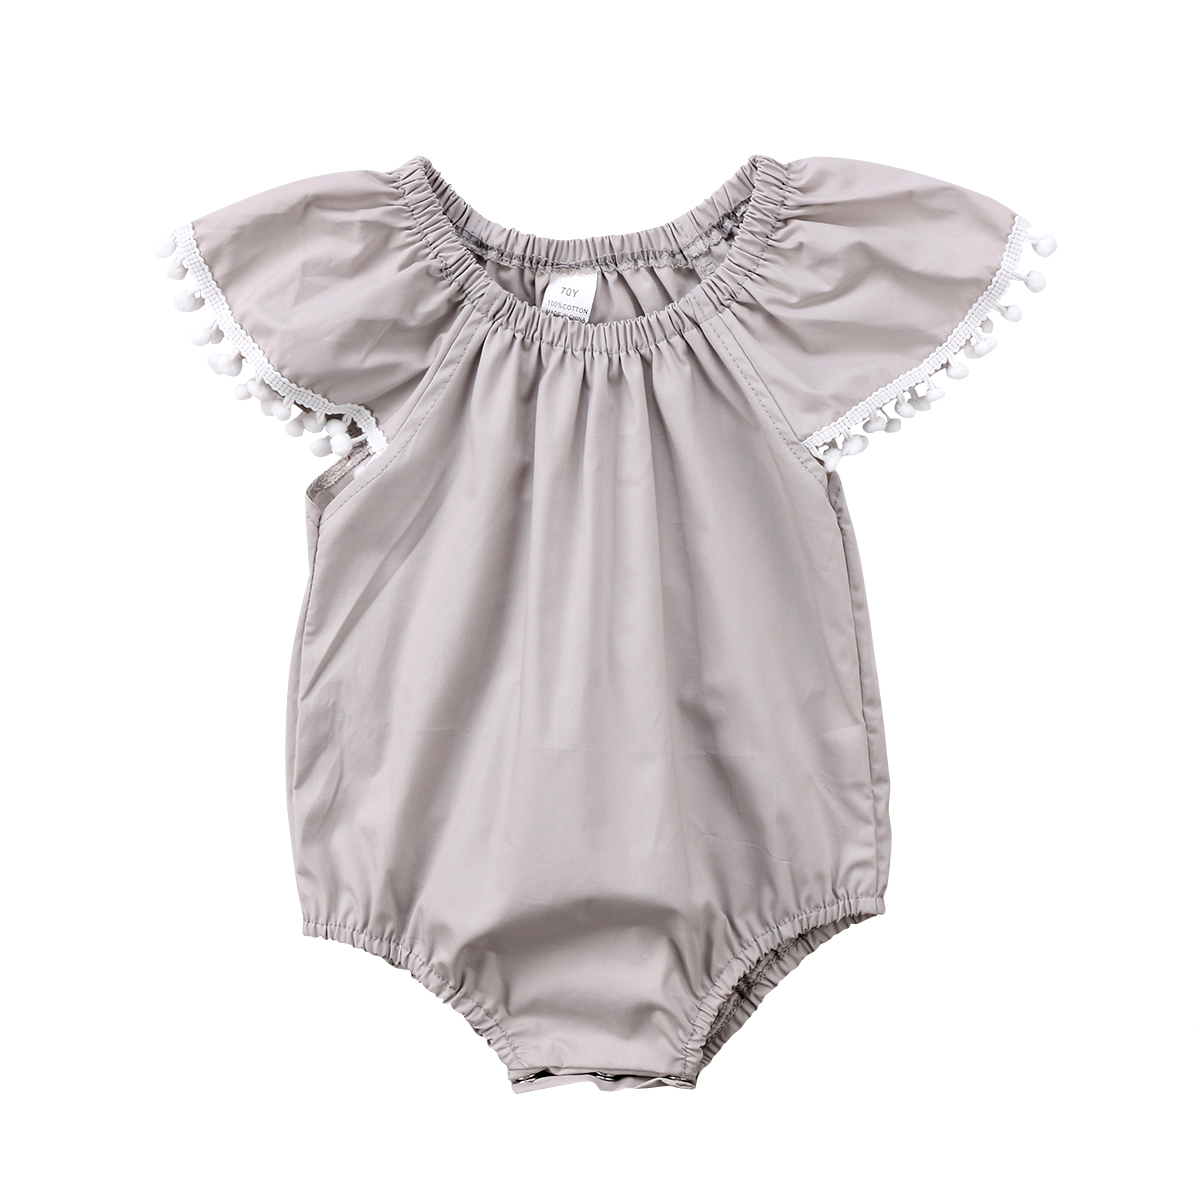 Summer Newborn Kid Baby Girl Clothe Cute Pom Pom Cotton   Romper   Short Sleeve Clothes Jumpsuit Infant Baby Girls Clothing 2018 New